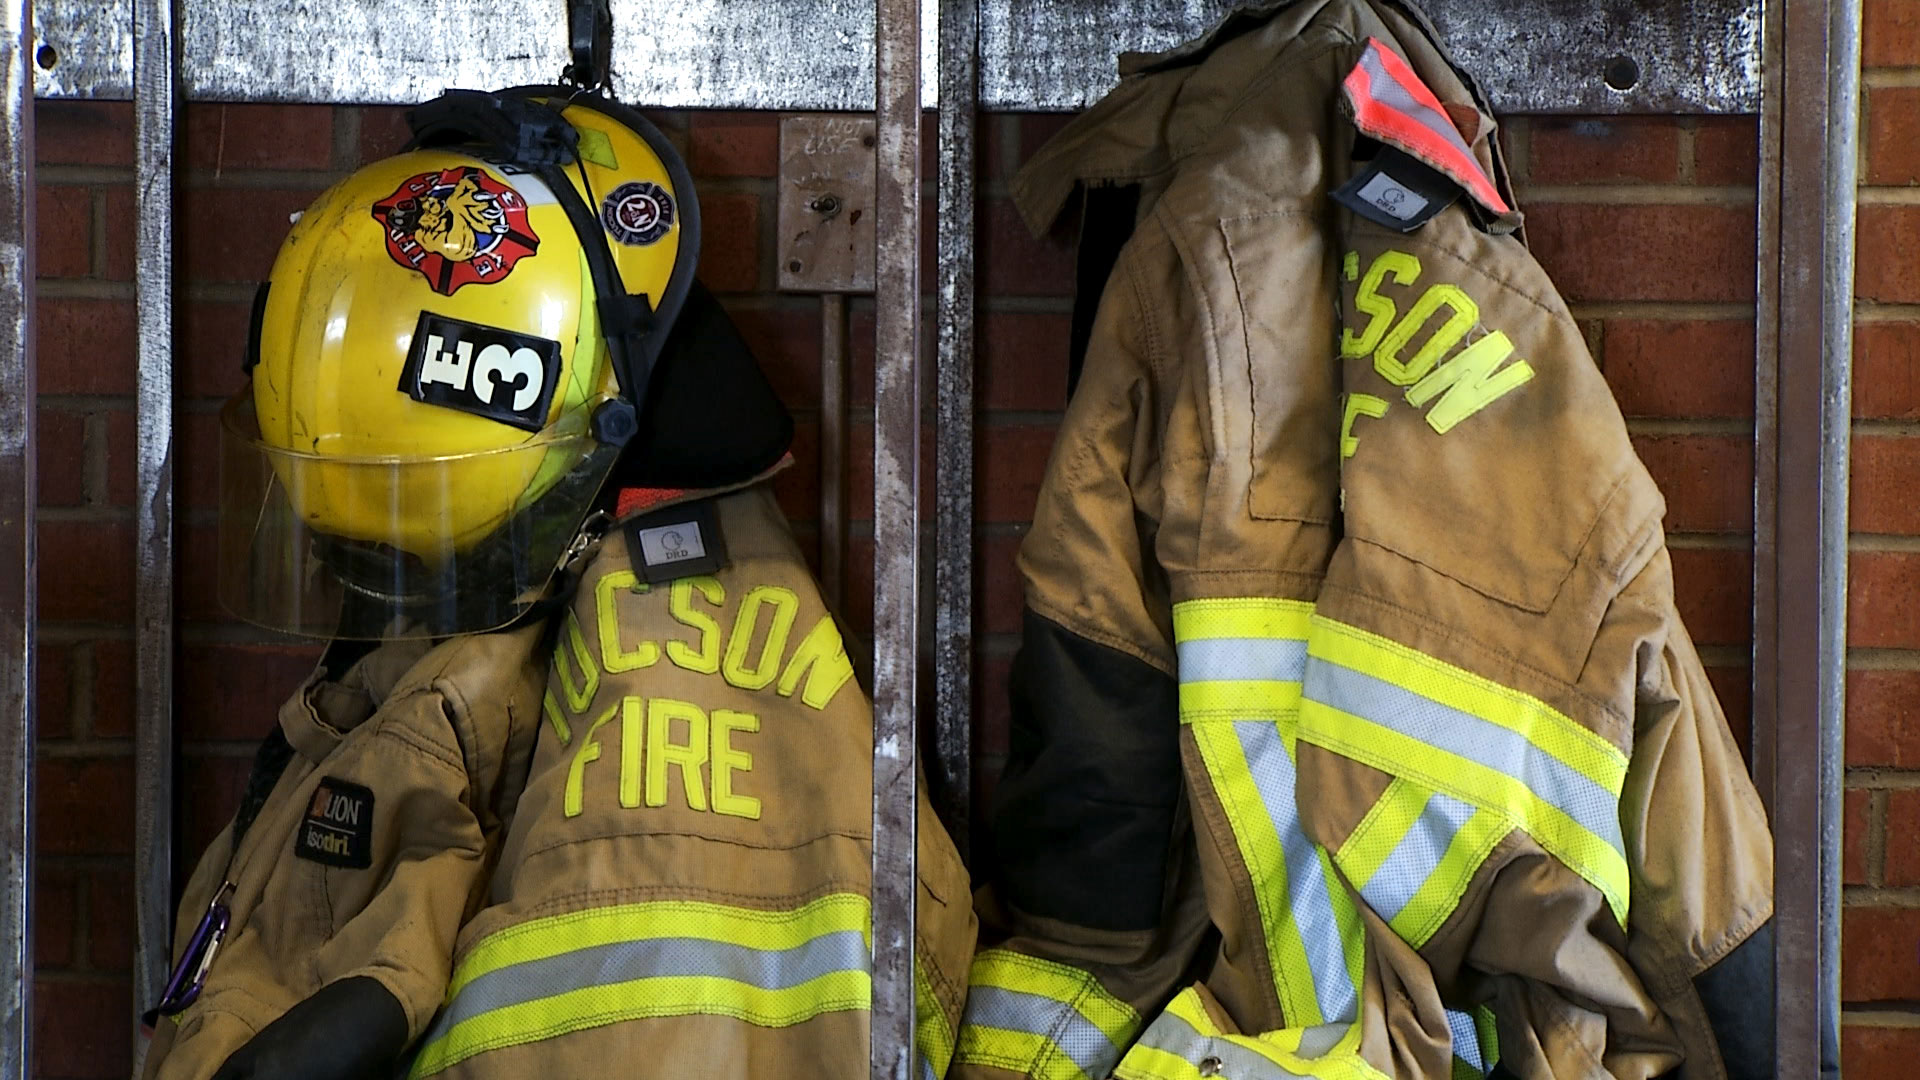 360 tfd uniforms